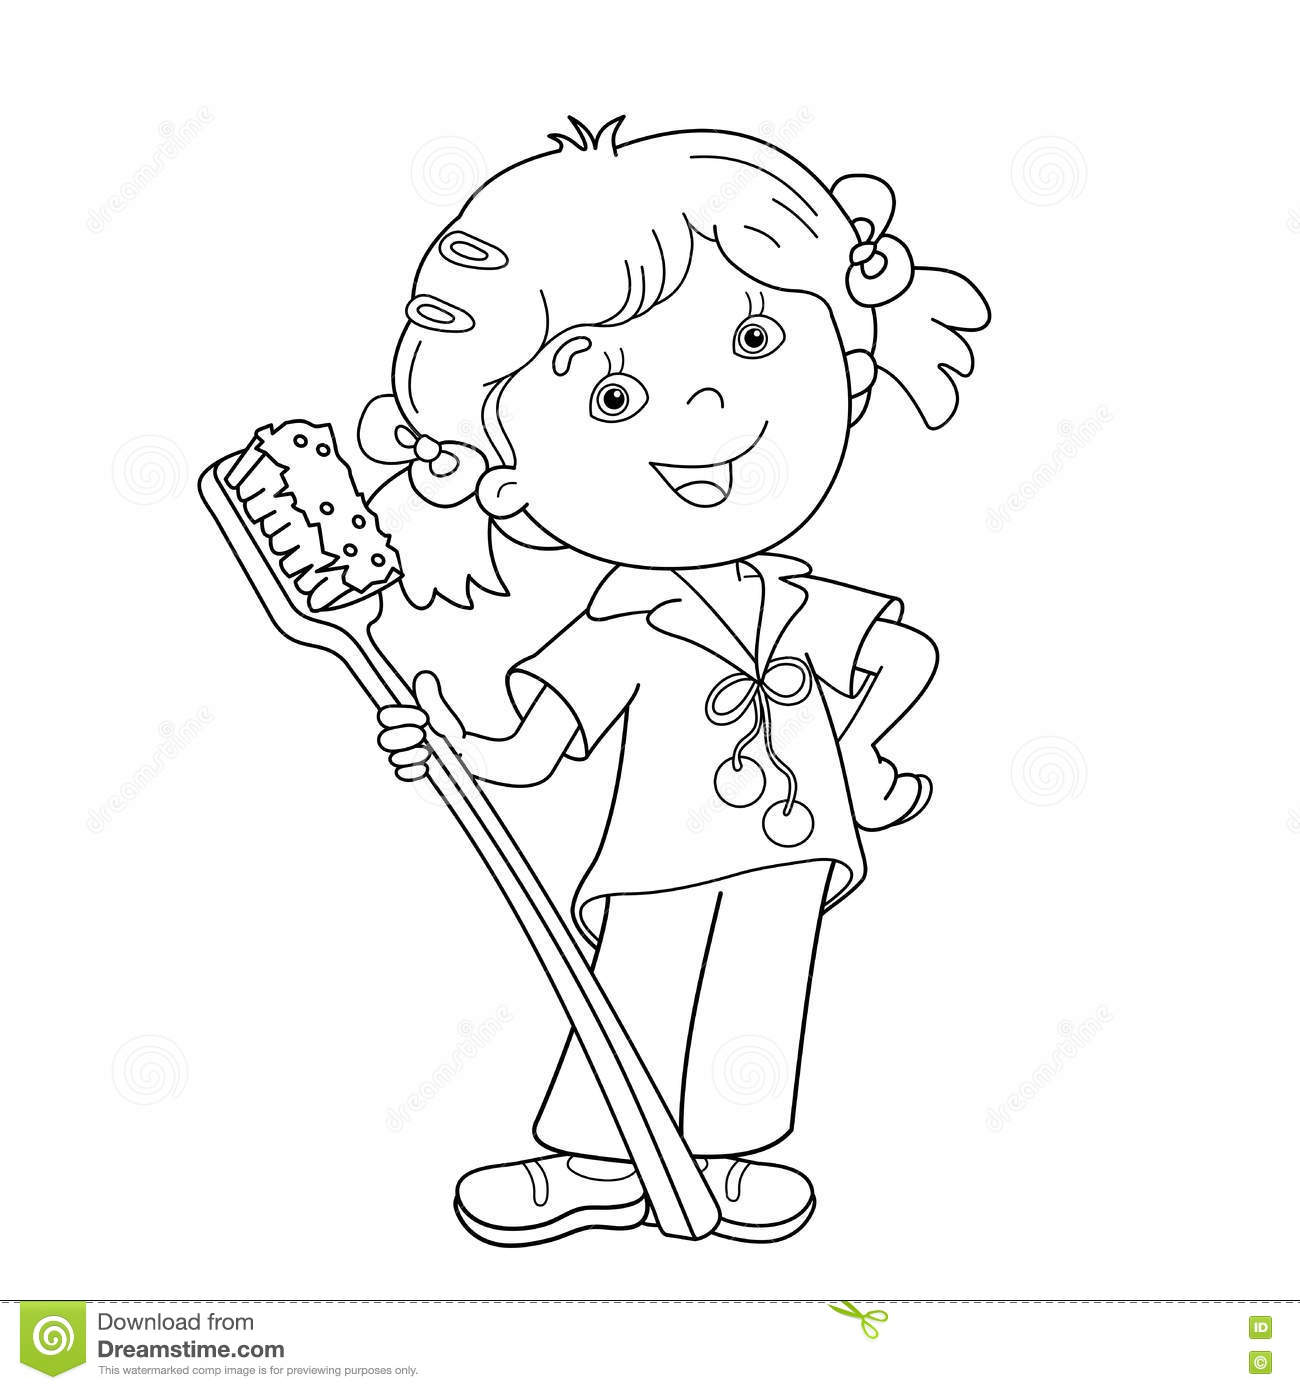 Coloring Page Outline Of Cartoon Girl With Toothbrush